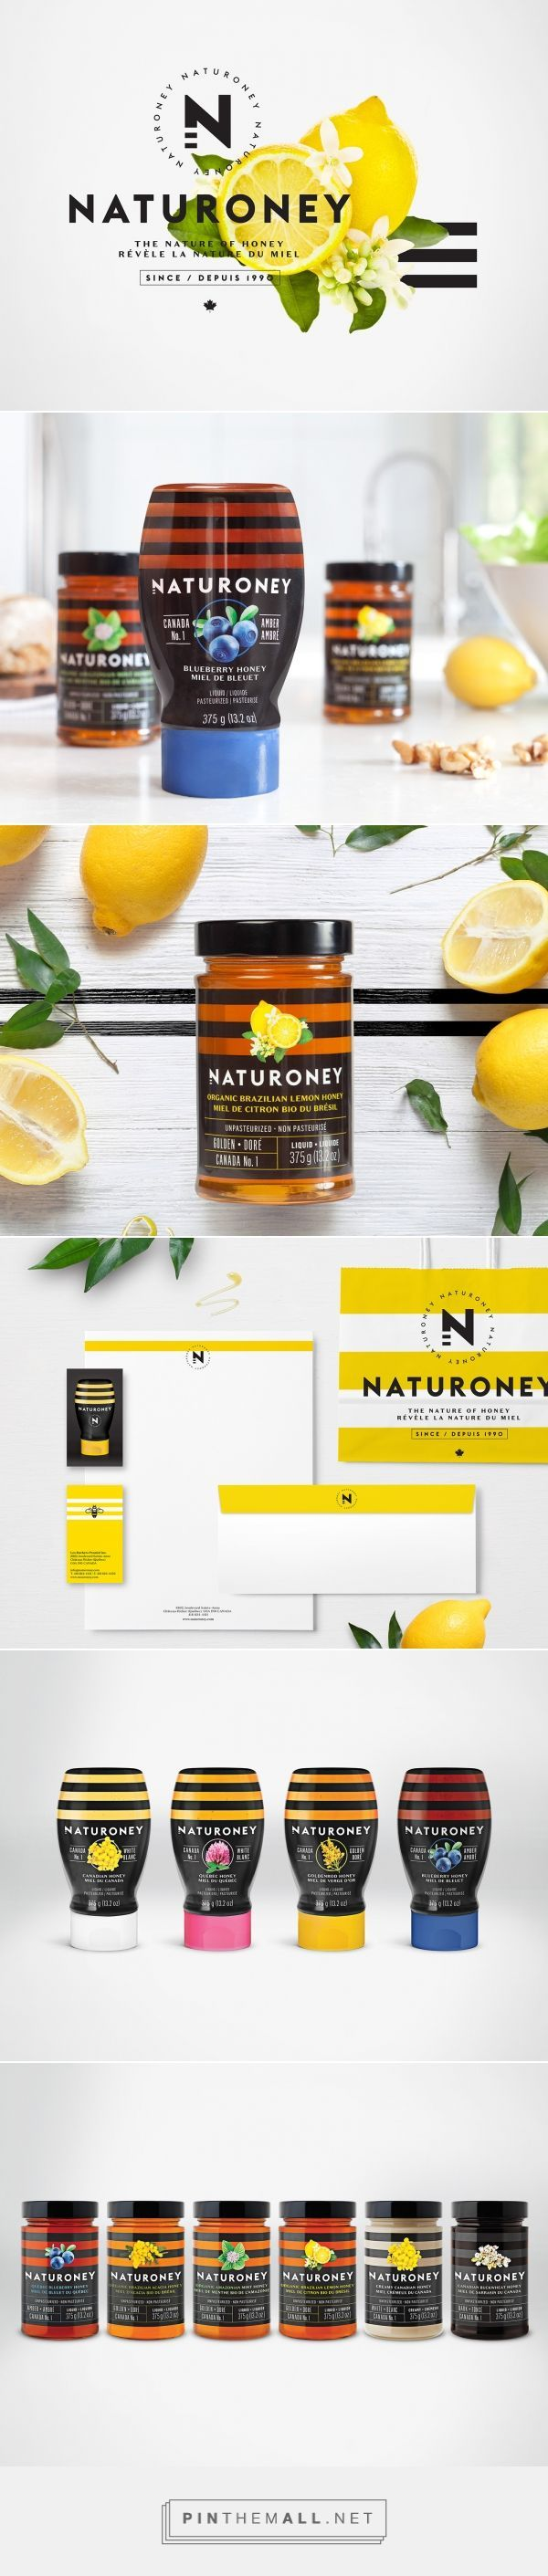 Naturoney Honey Branding and Packaging by Marie-Pier Gilbert and Lg2boutique